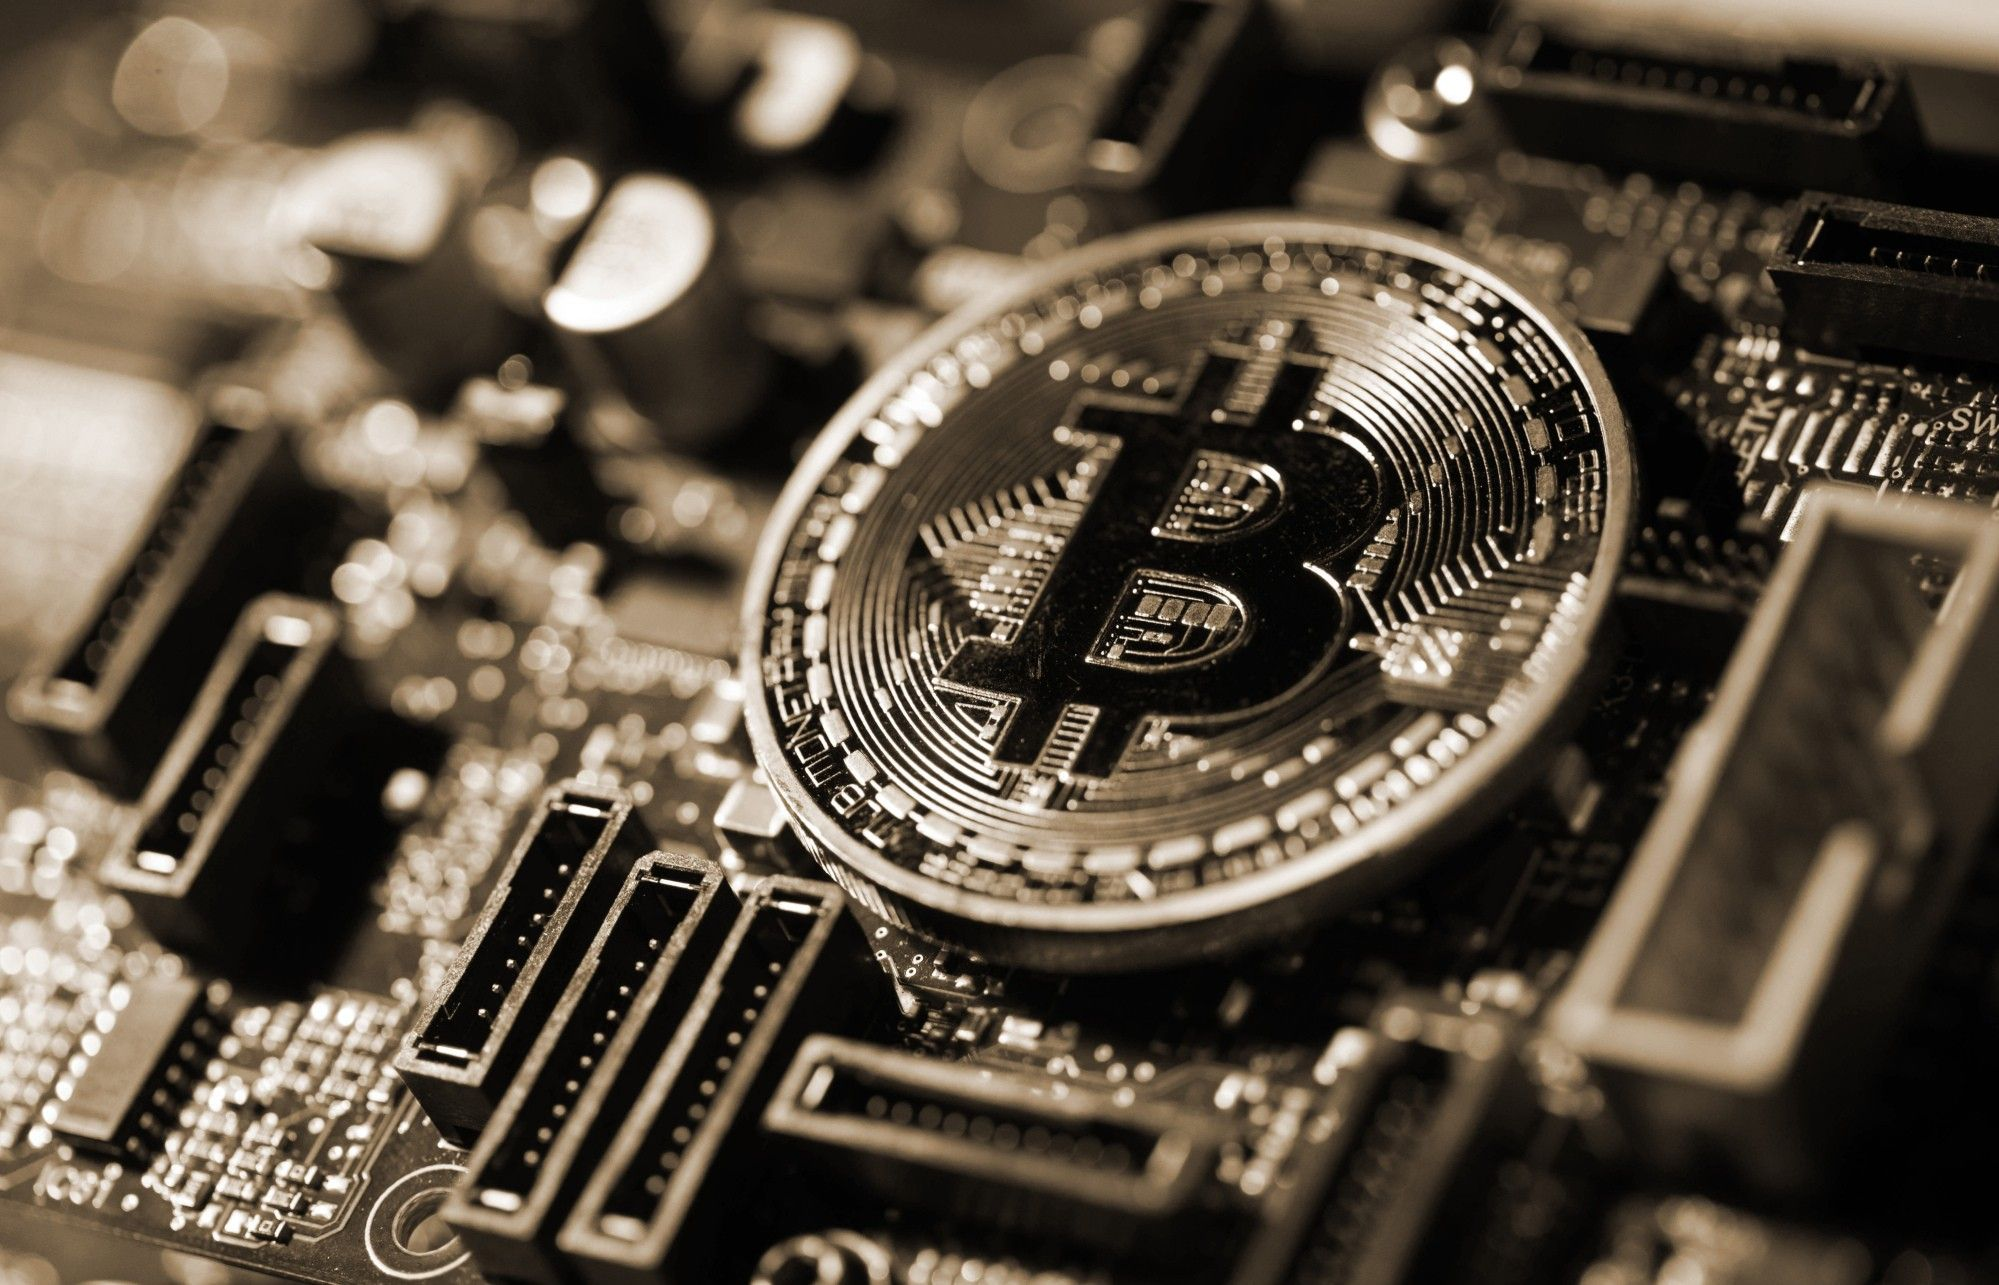 A coin representing Bitcoin cryptocurrency